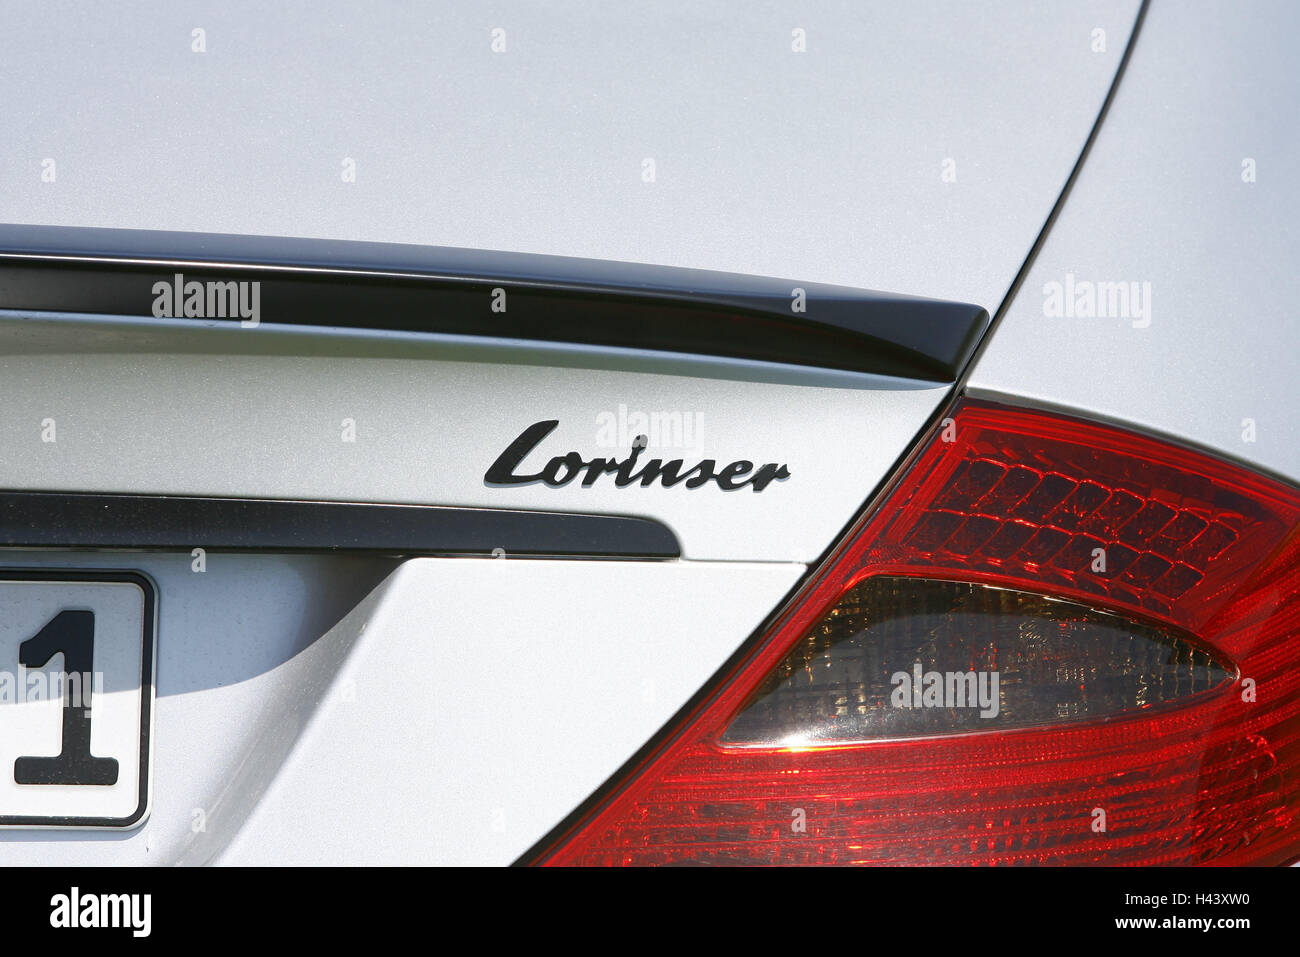 Sports cars, Mercedes Lorinser, silver, rear, close up, vehicle, car, stroke, Lorinser, rear, rear light, tuner, - Stock Image